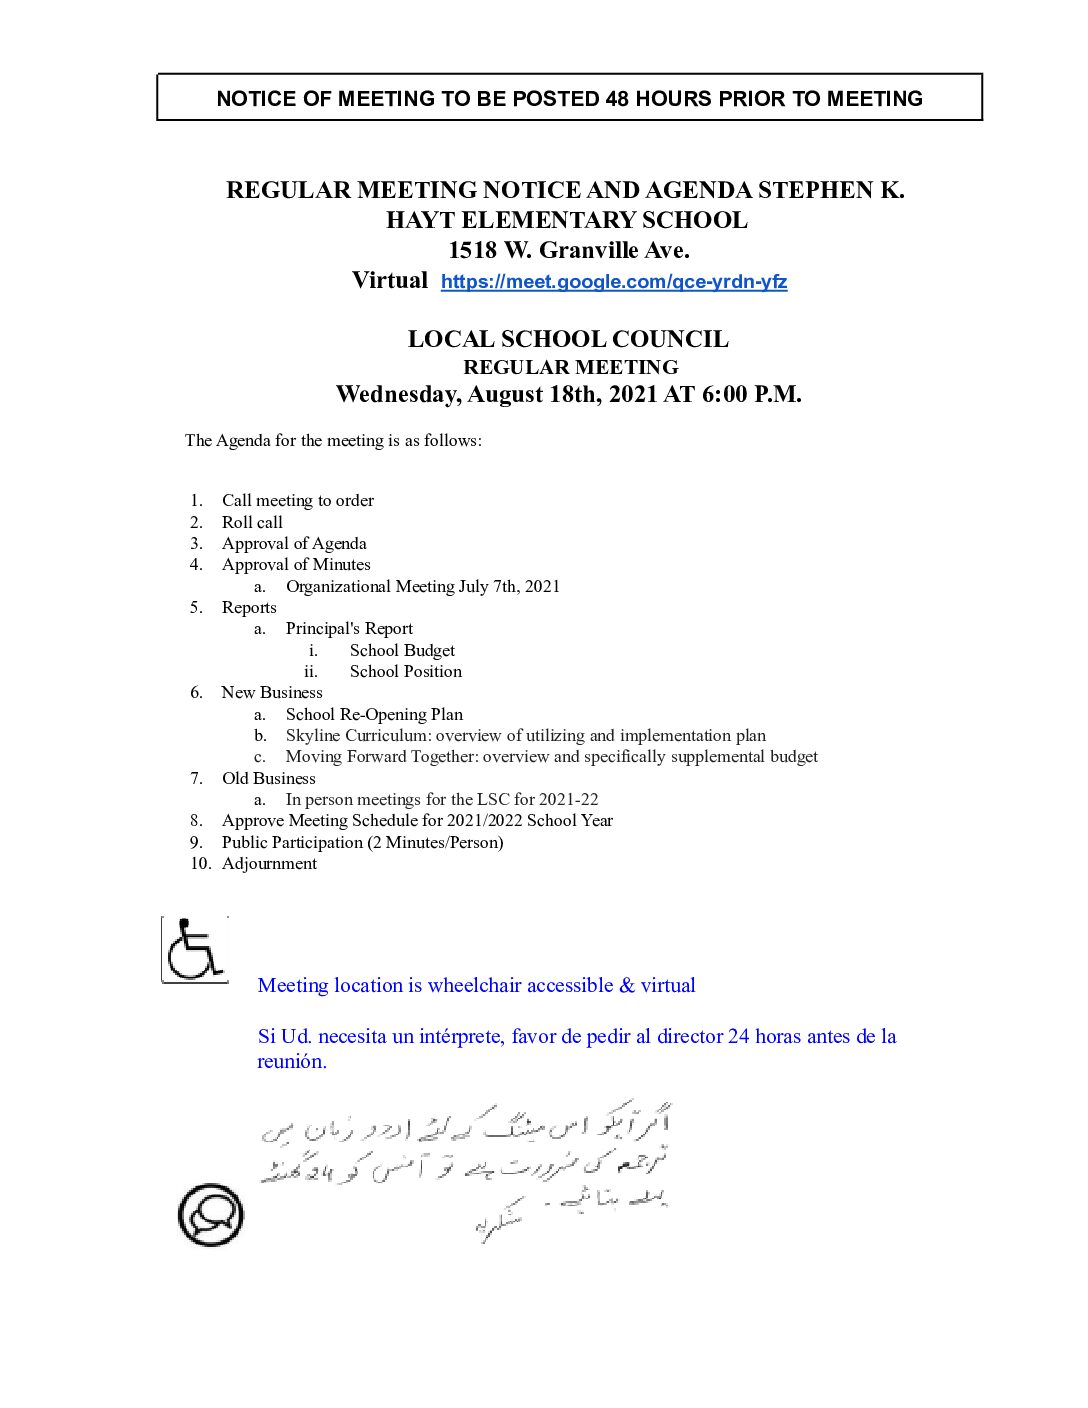 Local School Council Meeting Wednesday, August 18th, at 6:00pm